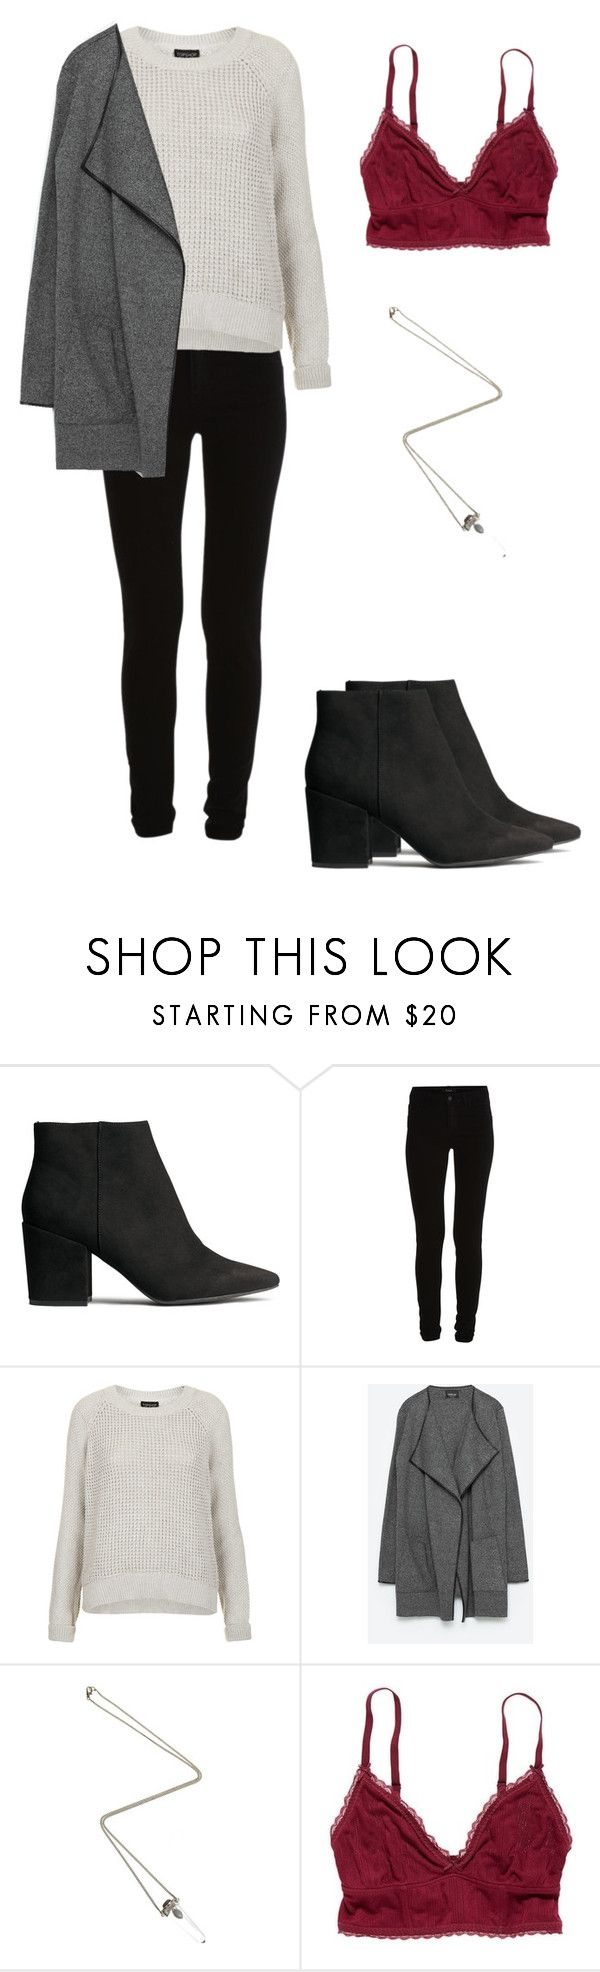 """""""Allison Argent"""" by zoegeorgiou2001 on Polyvore featuring H&M, Vila Milano, Topshop, ASOS and American Eagle Outfitters"""